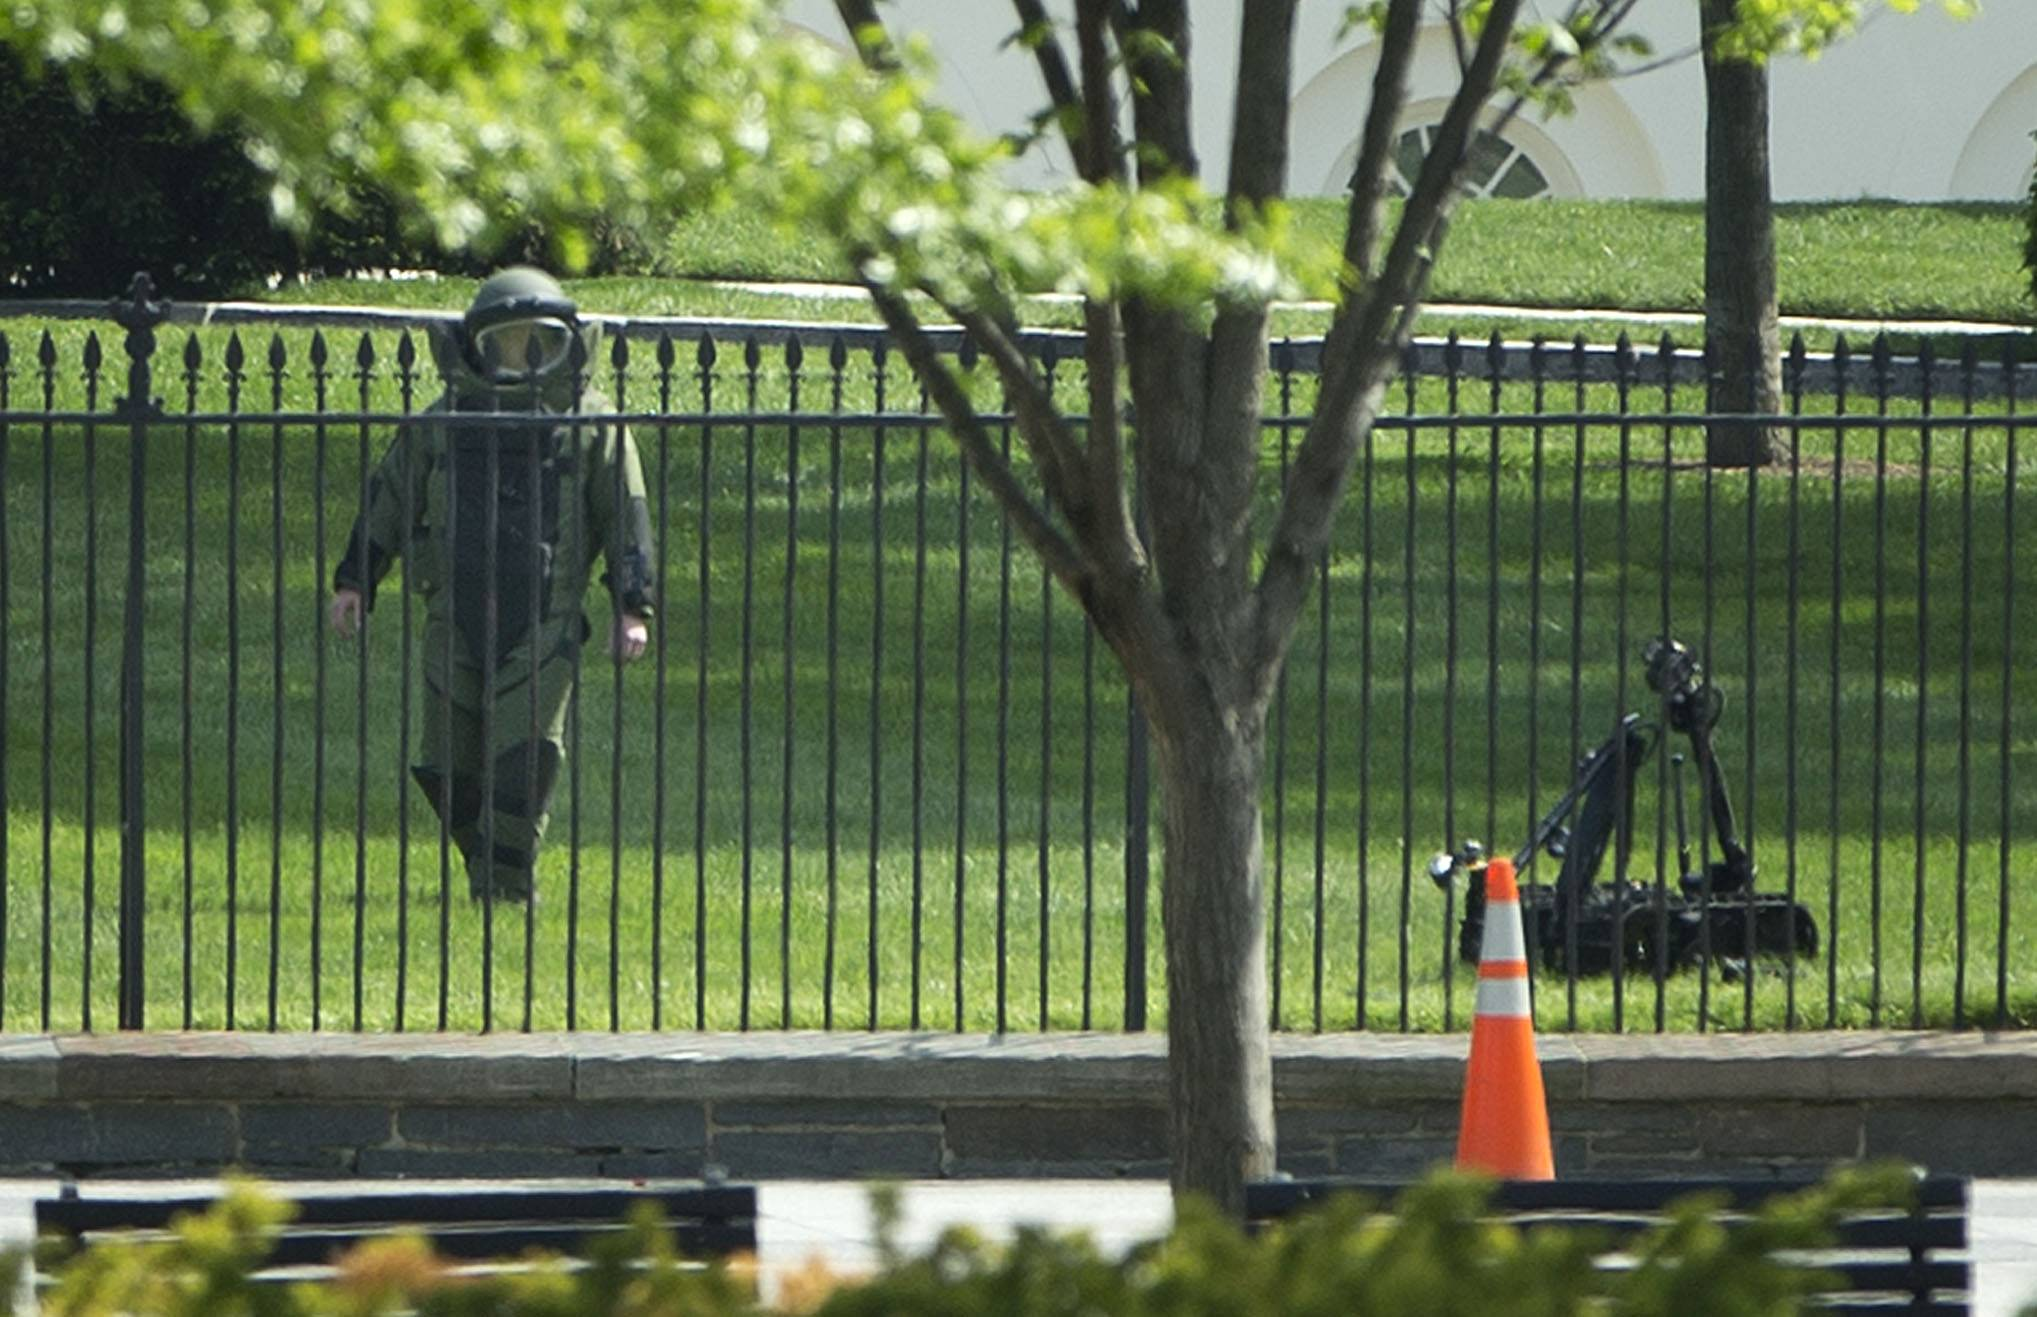 A bomb technician works with an explosives ordinance disposal robot to help recover an unknown item that was thrown over the fence Thursday on the north side of the White House in Washington. For the second time in three days, the White House was on lockdown because of a security breach. The Secret Service says two people threw something over the fence surrounding the White House complex -- one person from the south side and one from the north. The two people were detained and questioned.